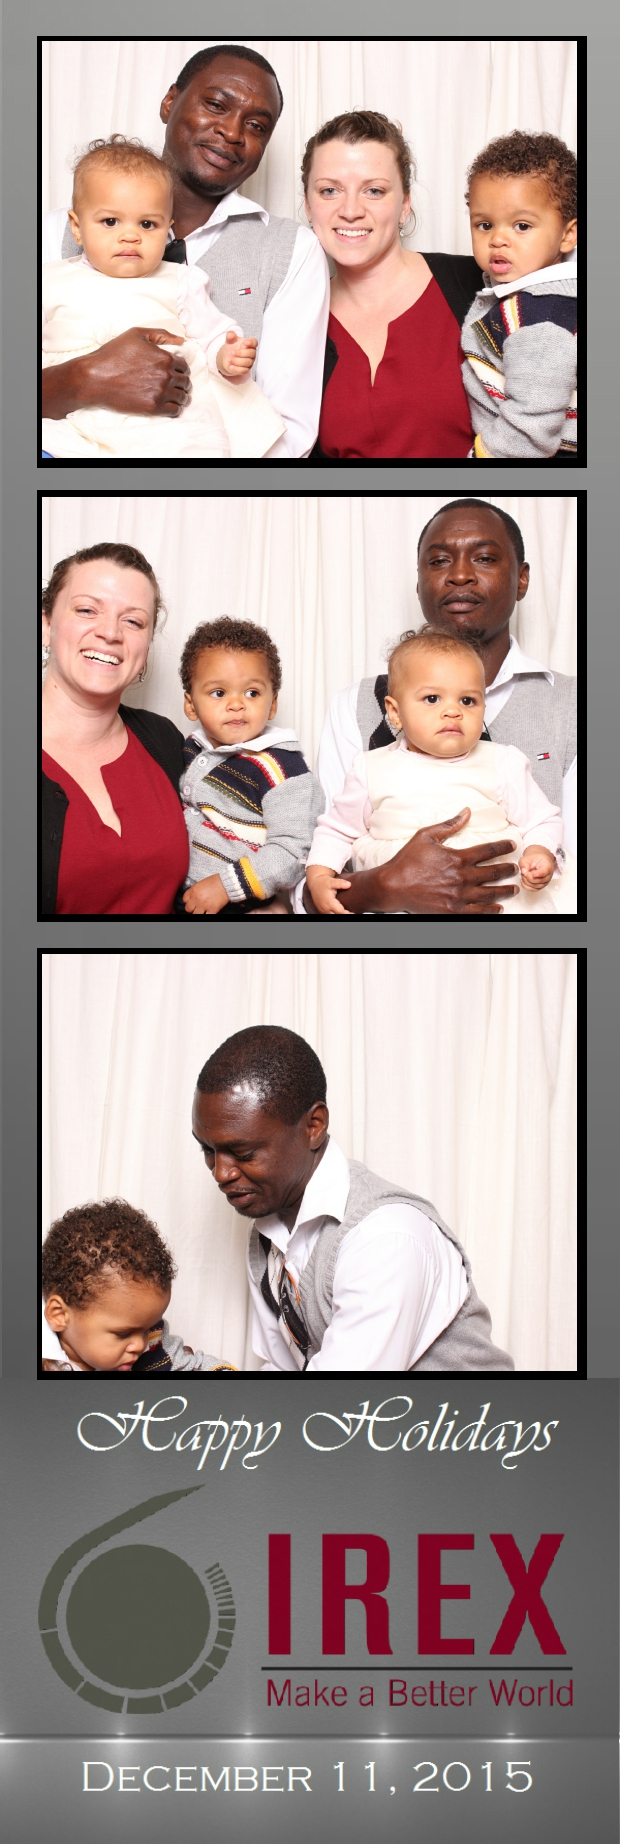 Guest House Events Photo Booth Strips IREX (16).jpg